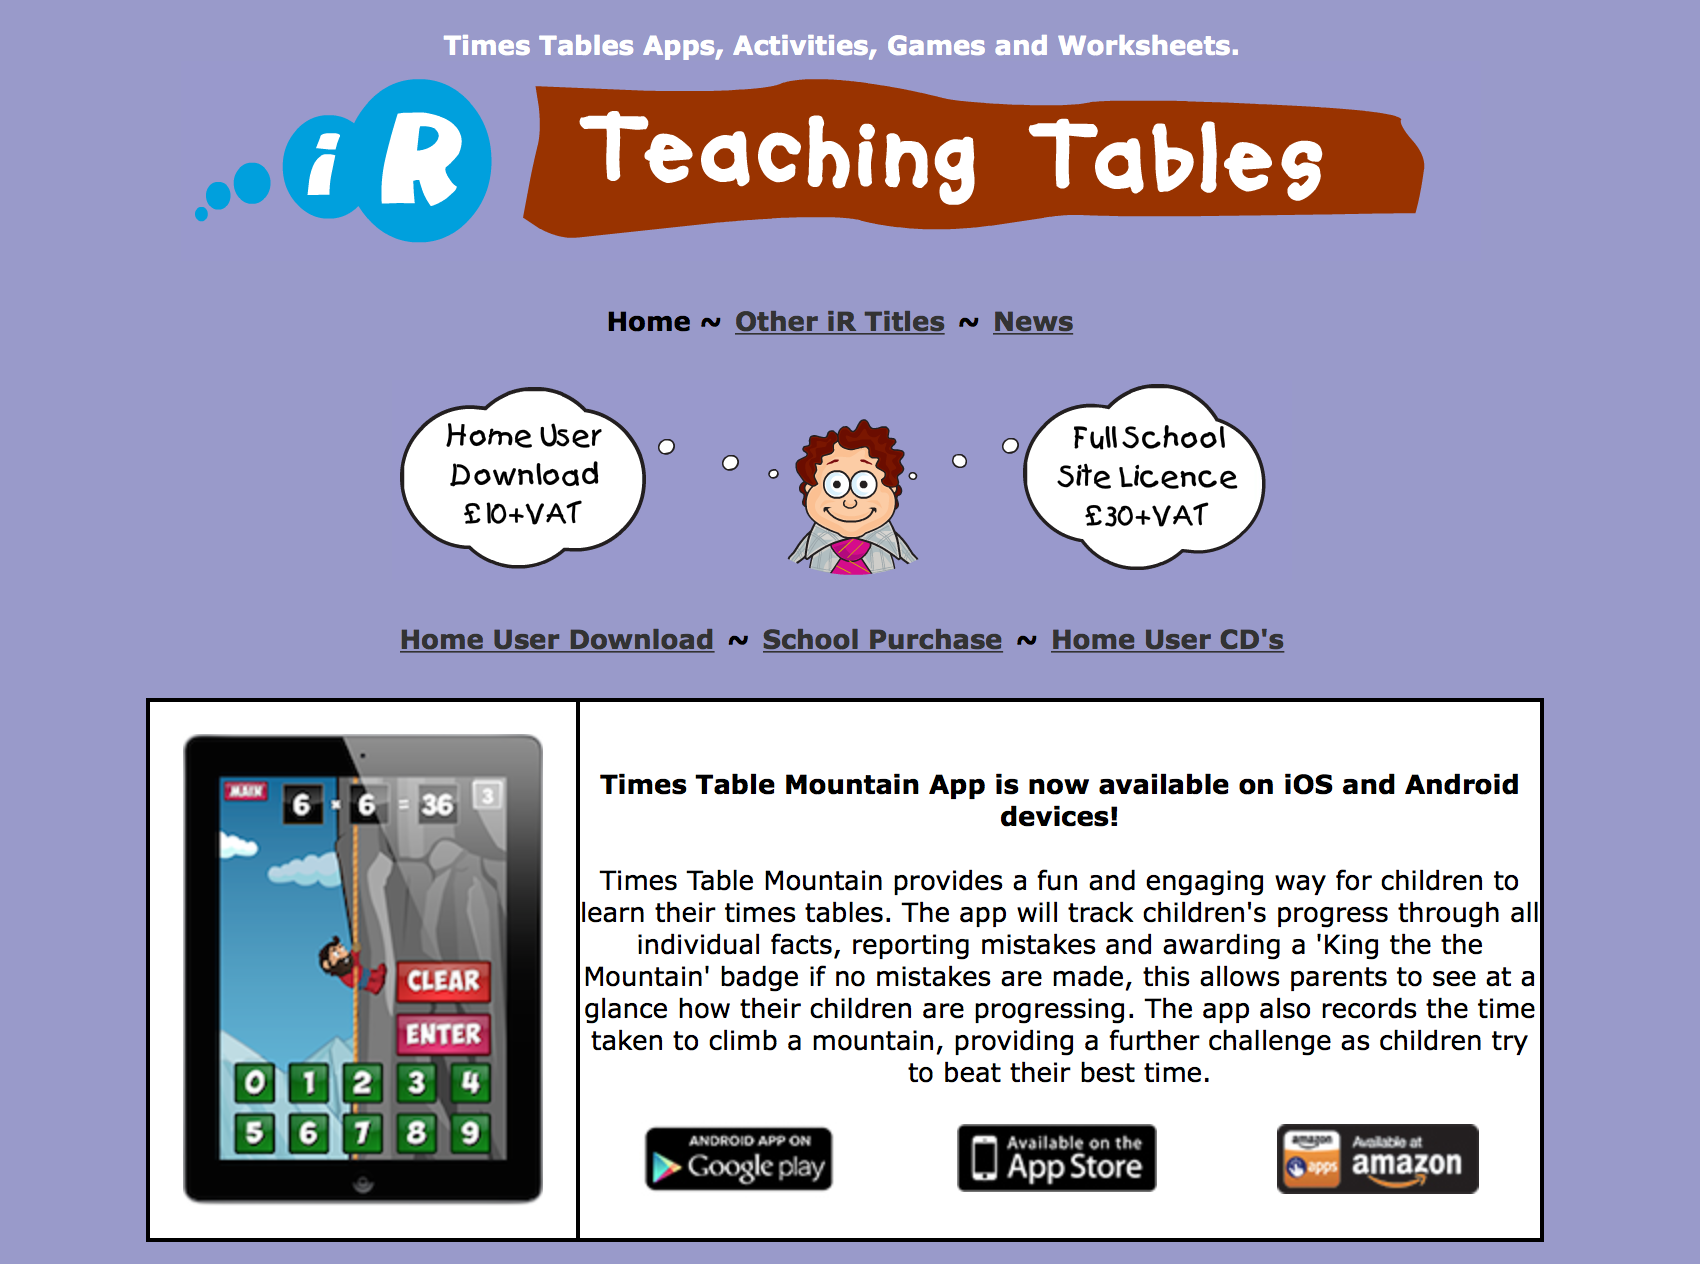 Teaching Tables With Images